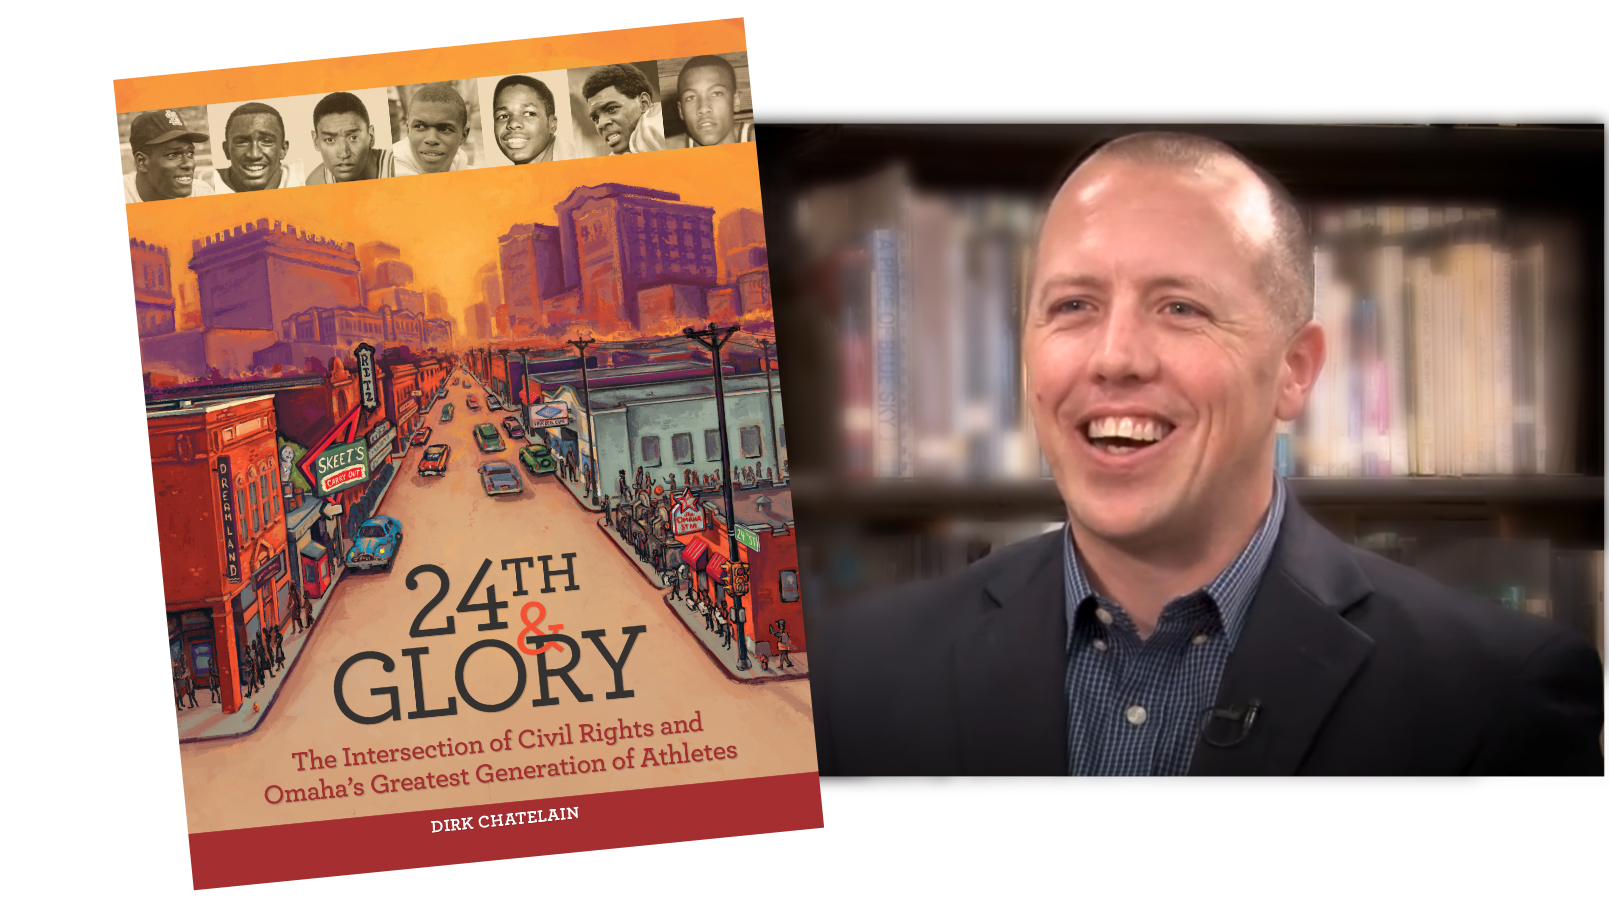 Dirk Chatelain Library 24 & Glory Website